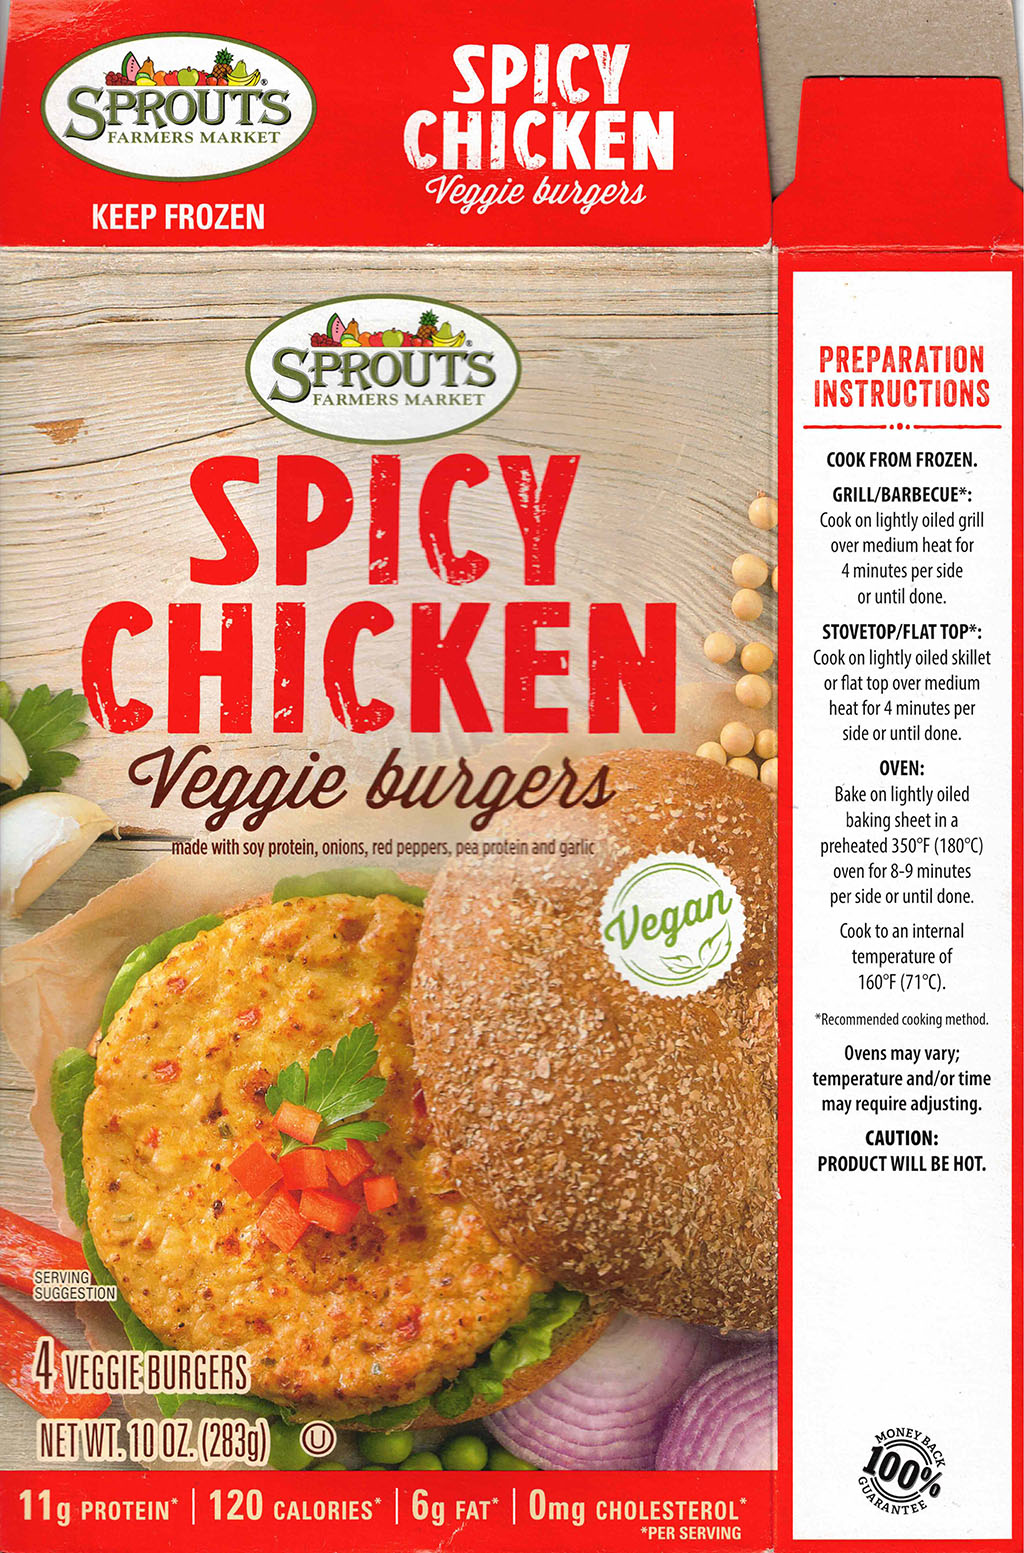 Sprouts Spicy Chicken Veggie Burgers cooking instructions